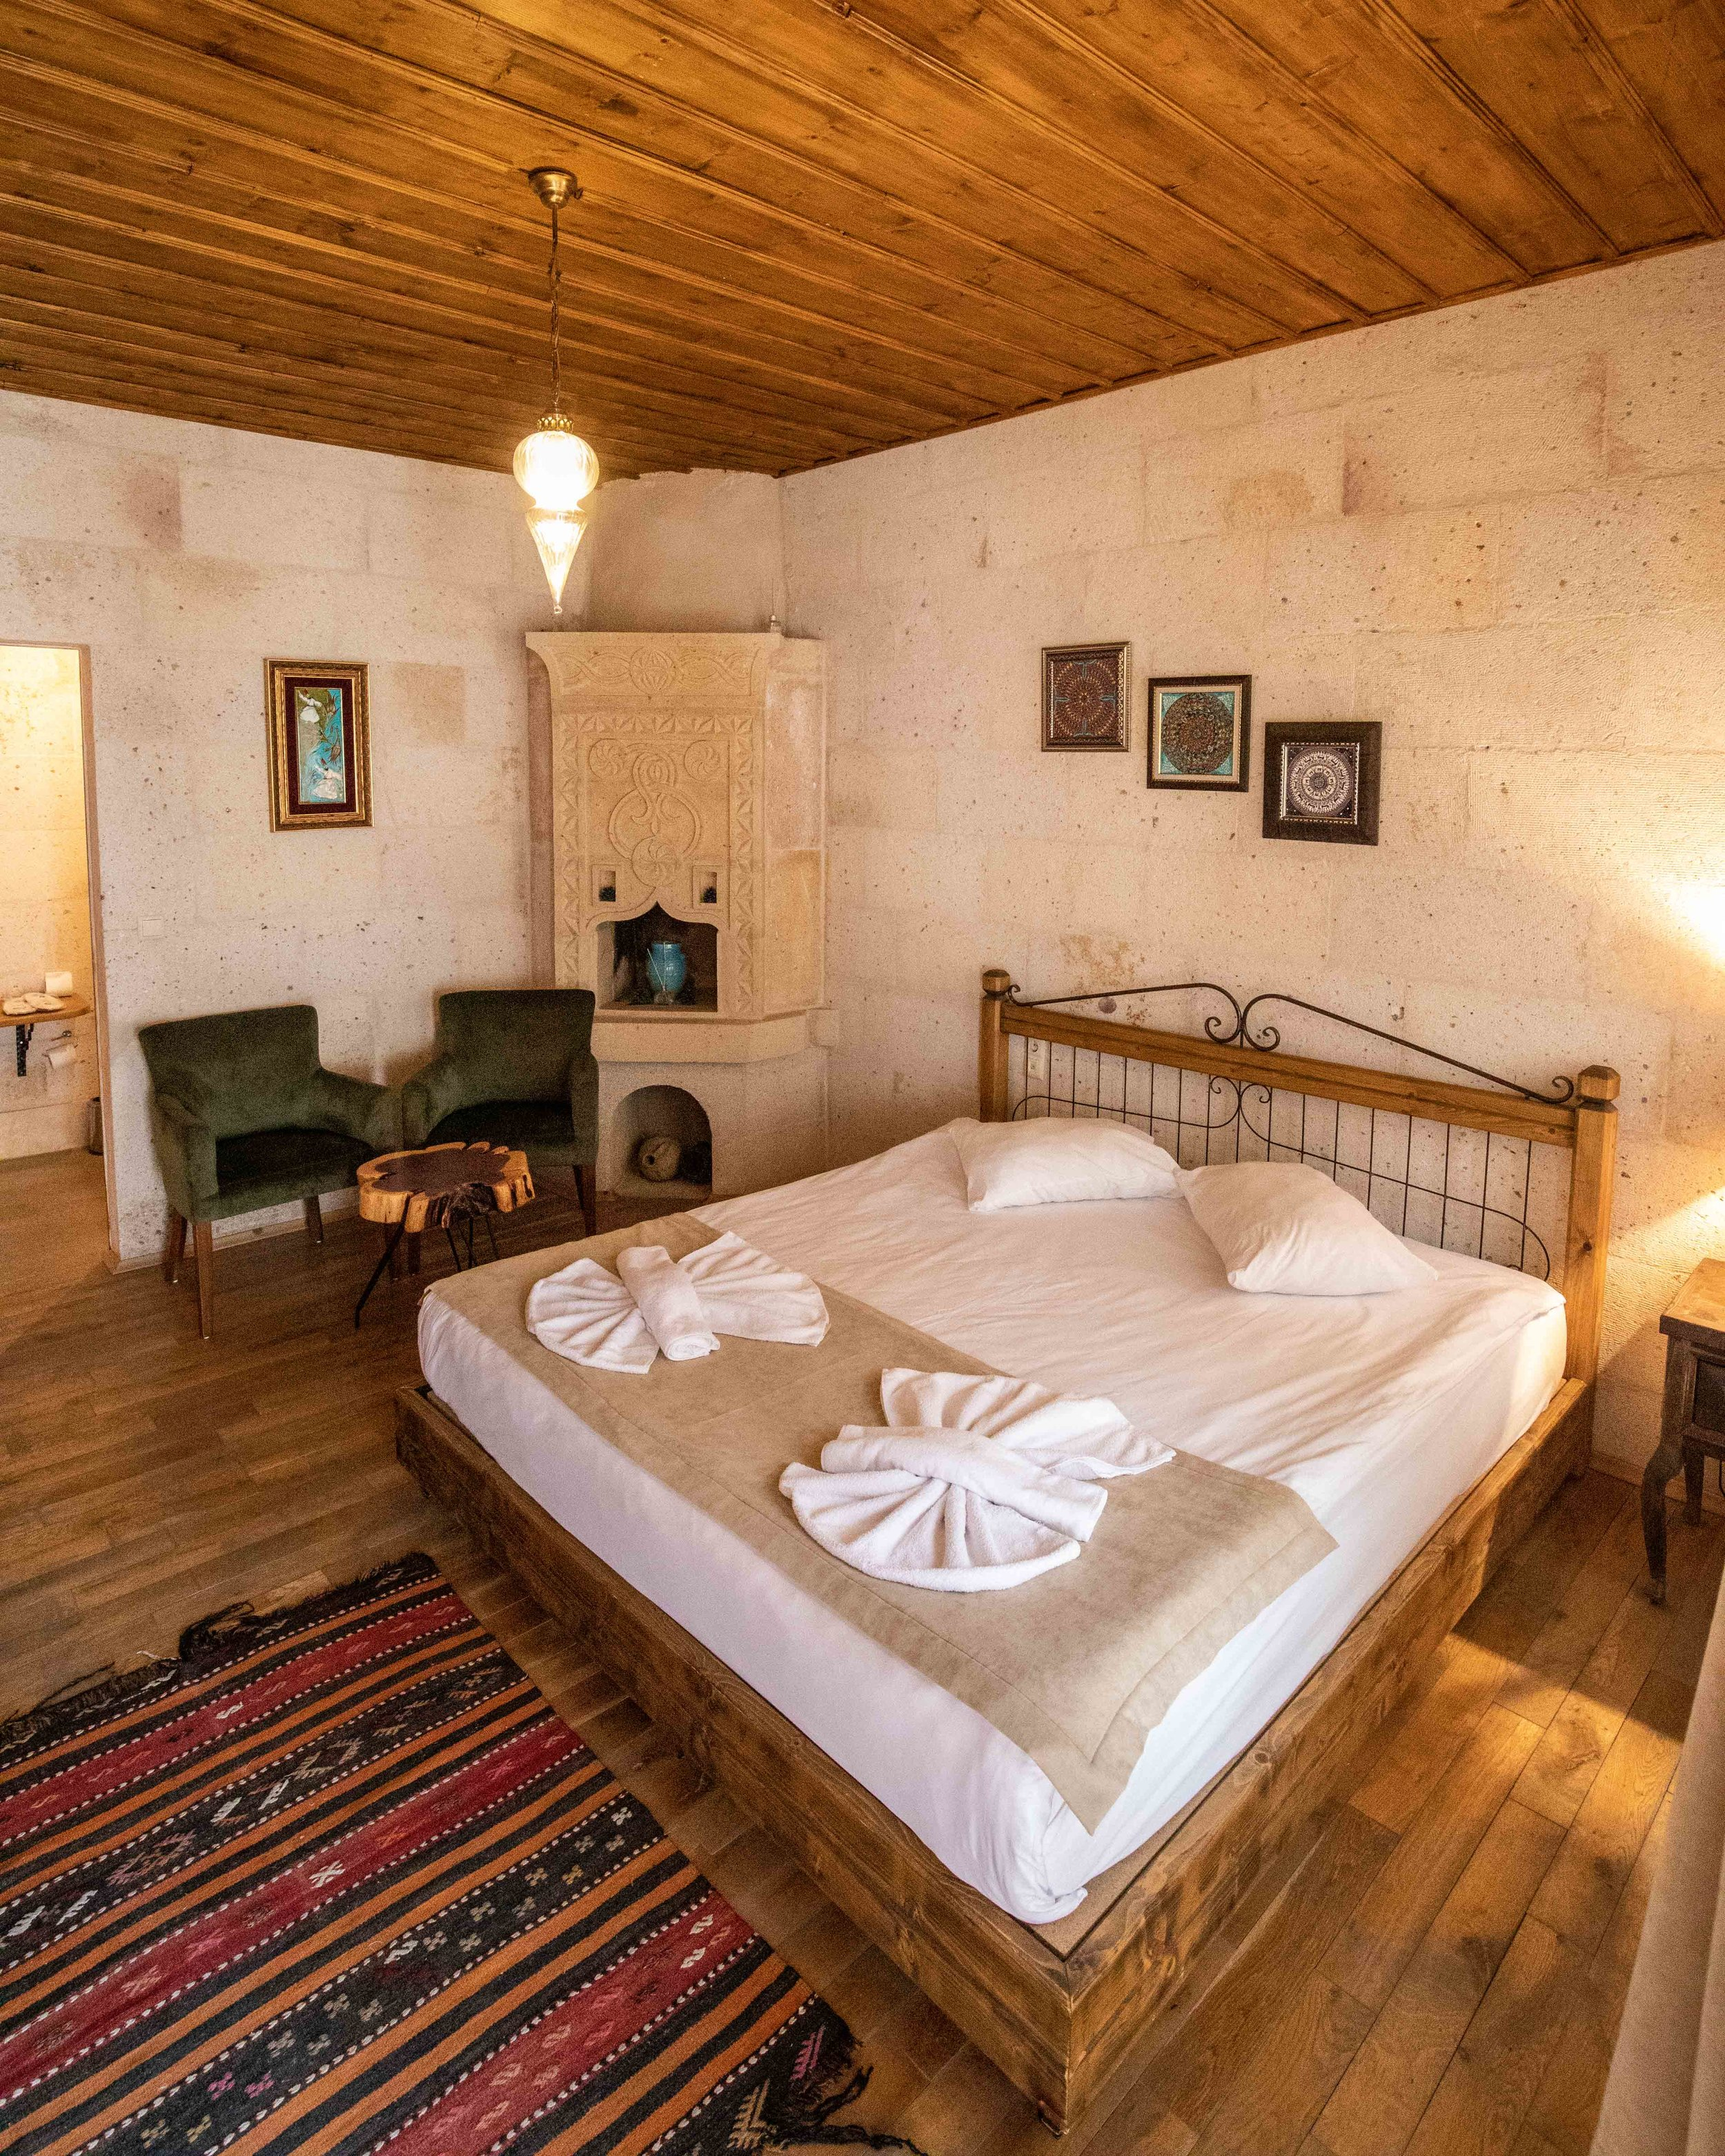 Duven House - Where to stay in Cappadocia